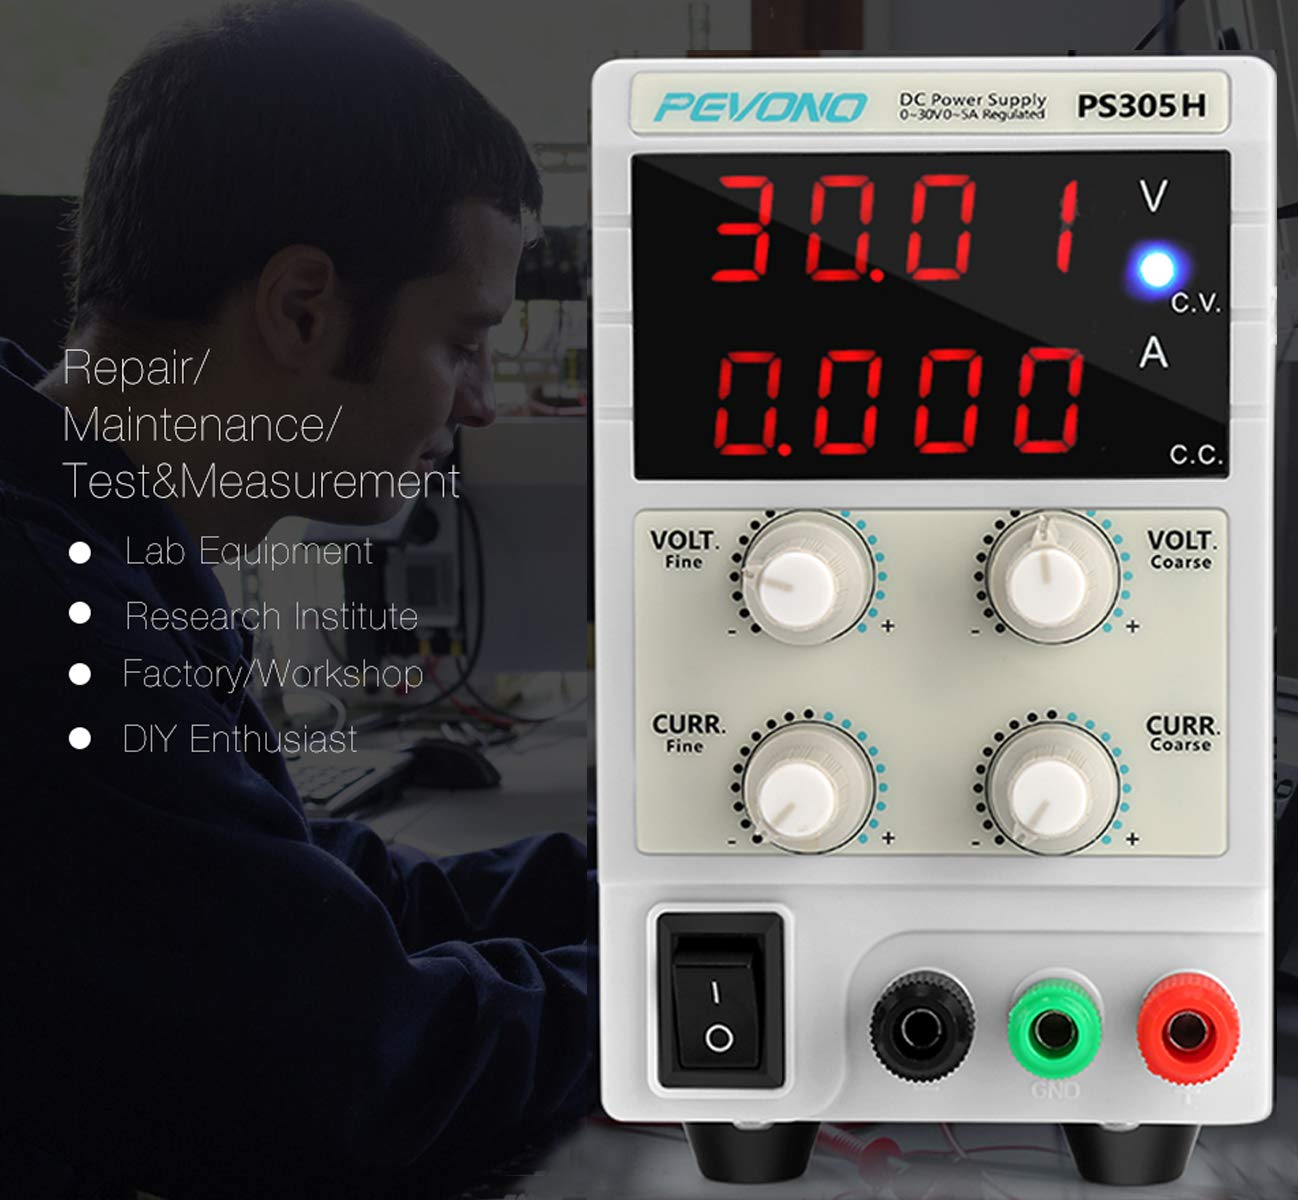 Best DC Bench Power Supply, Pevono PS305H 30V/5A 4 Digital LED Desktop Switching Variable Power Supply Voltage&Current Regulated Supply Power Source For Lab Repair,Electronic Tester, Power Calculator by Pevono (Image #6)